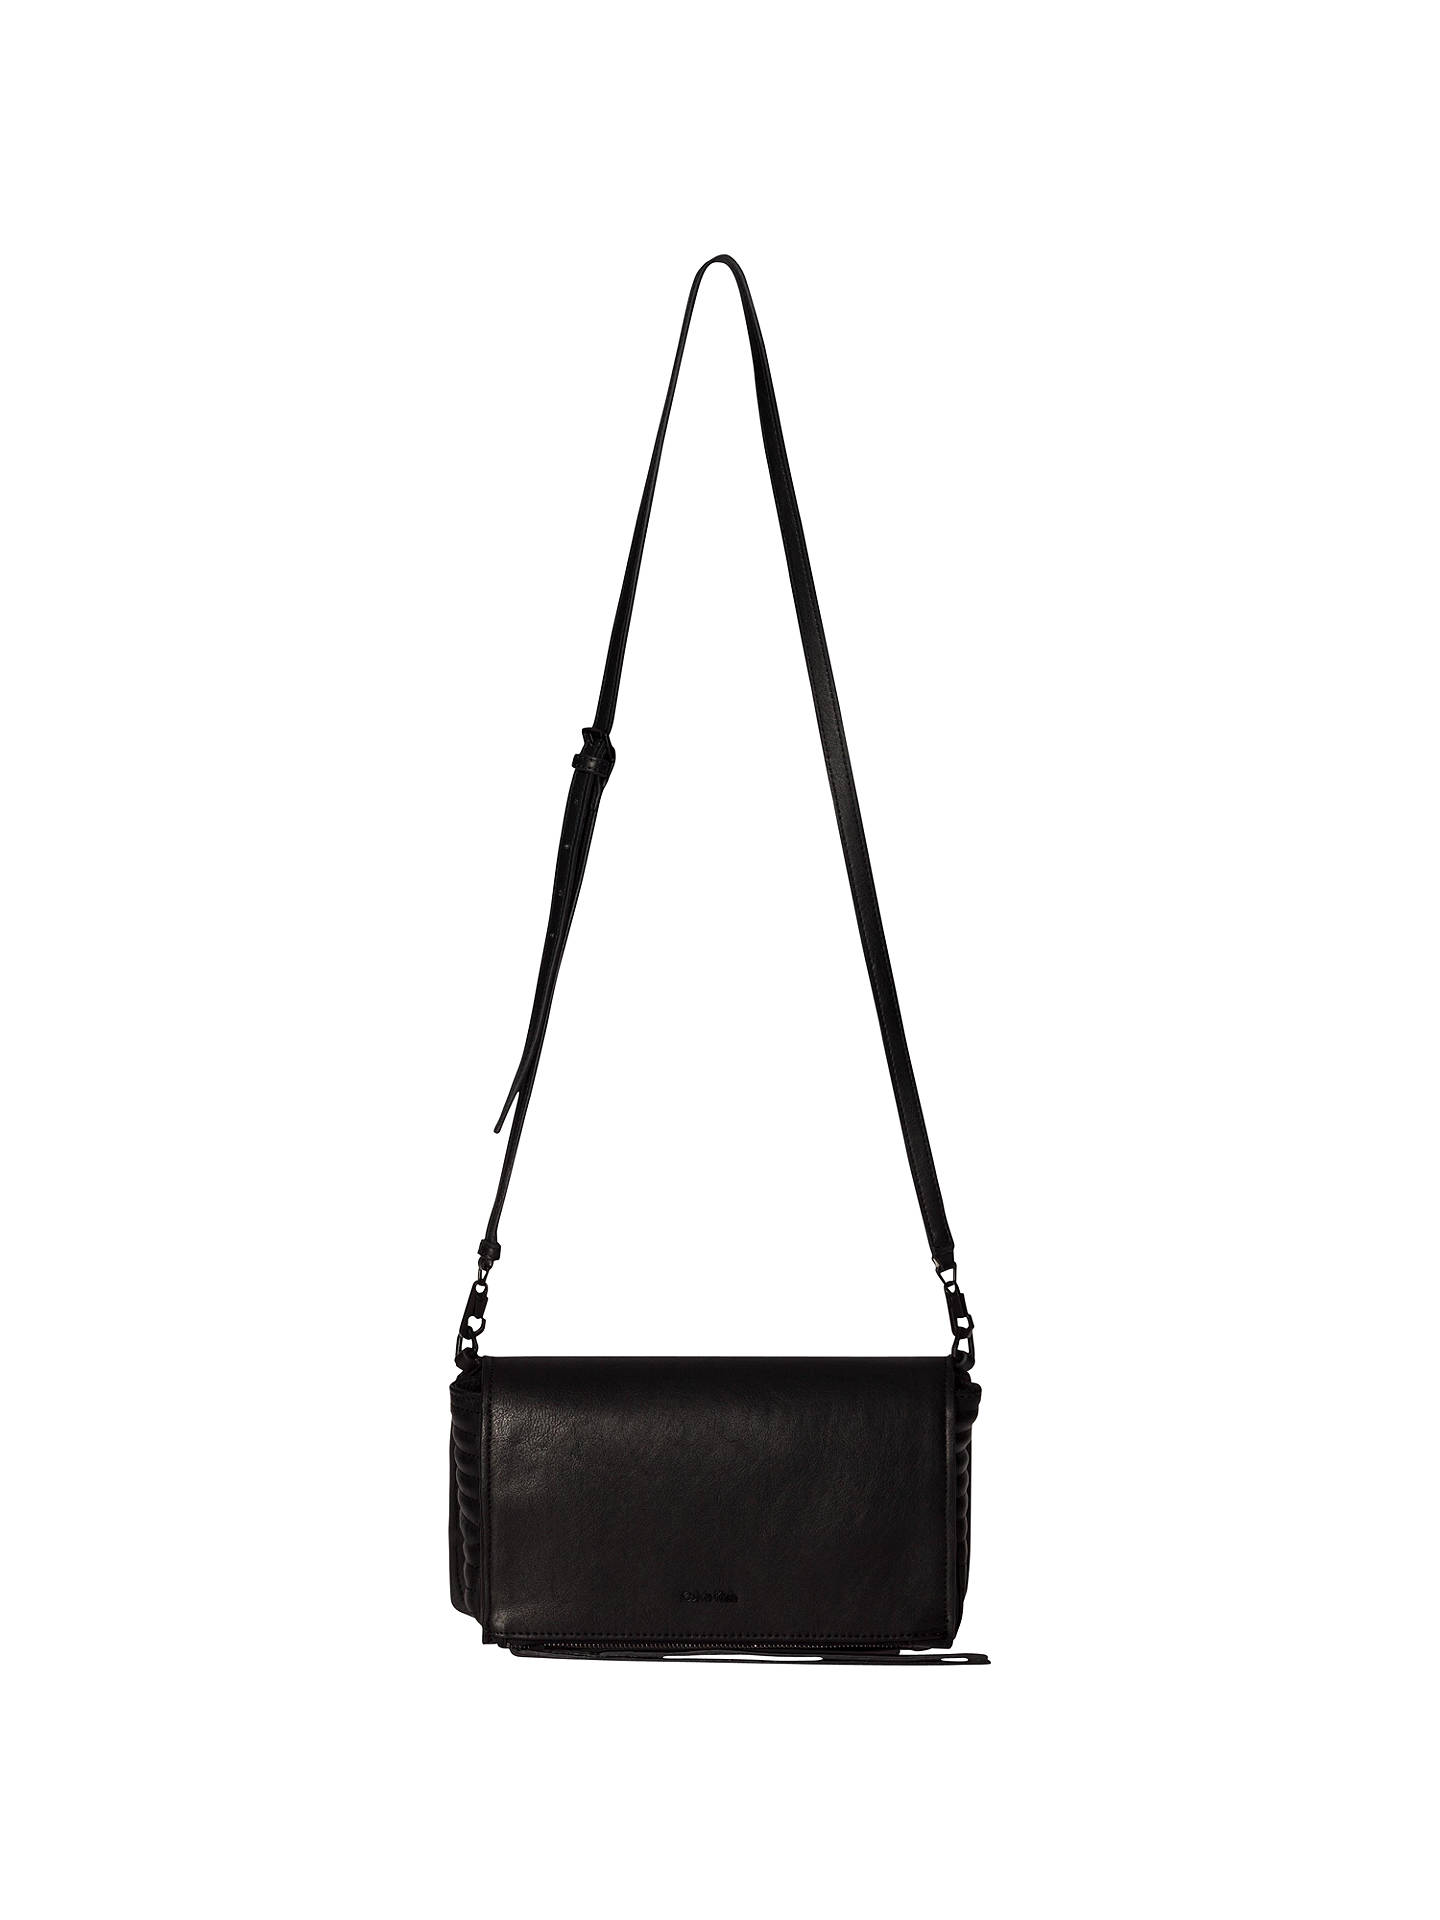 aa2a2faf9a39 BuyCalvin Klein Esther Small Leather Cross Body Bag